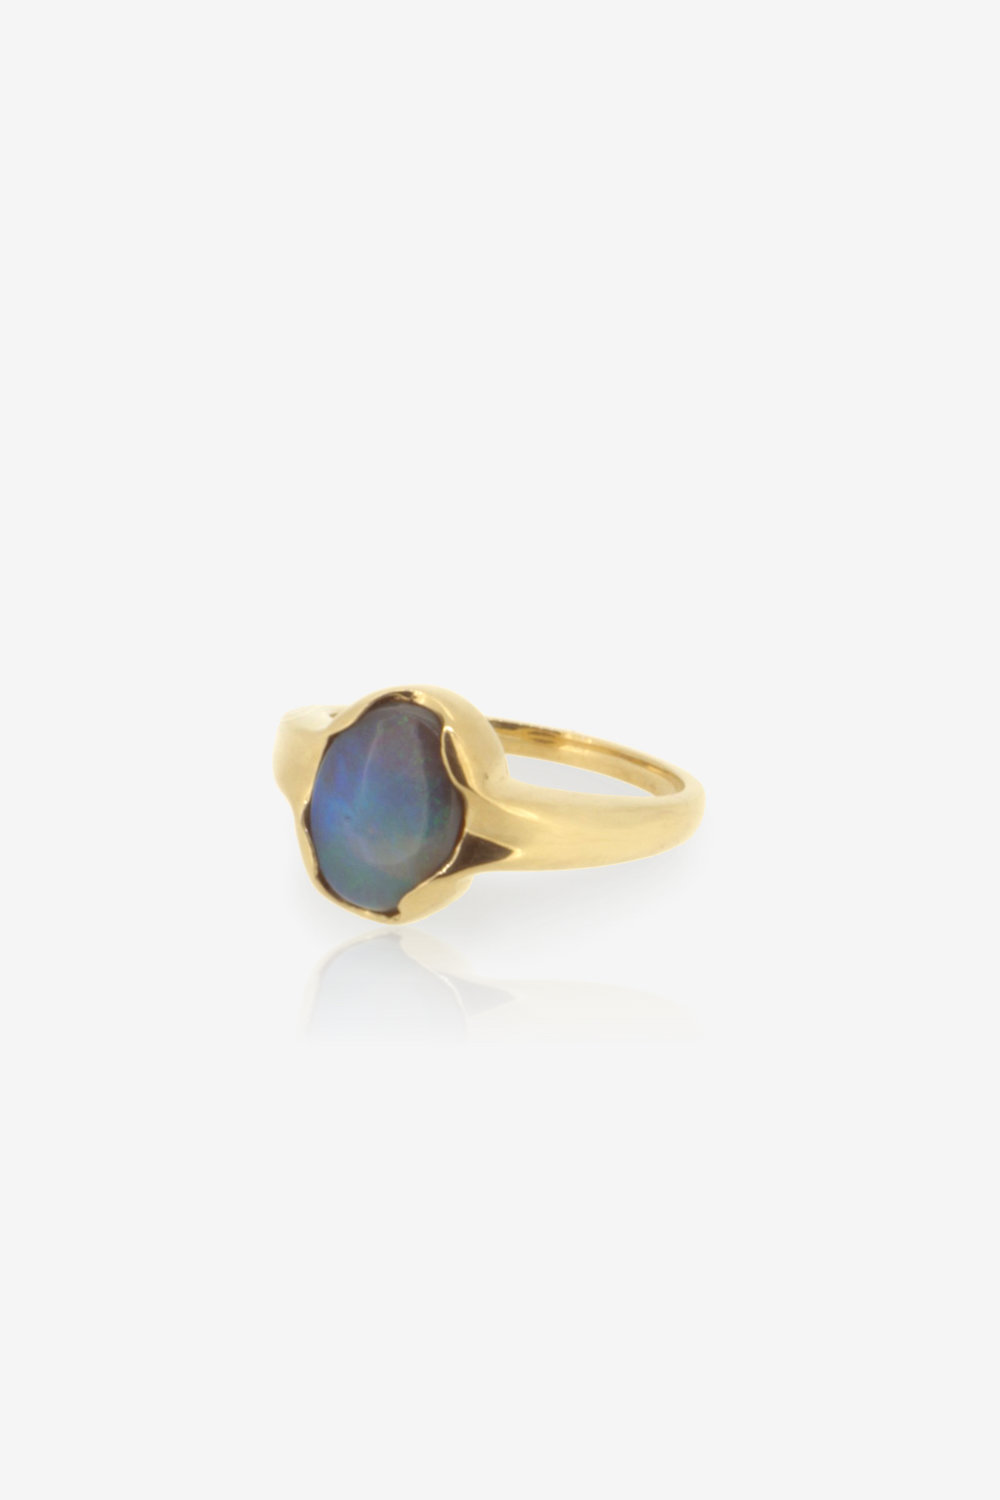 1.10ct Black Opal Fairmined Eco gold engagement ring